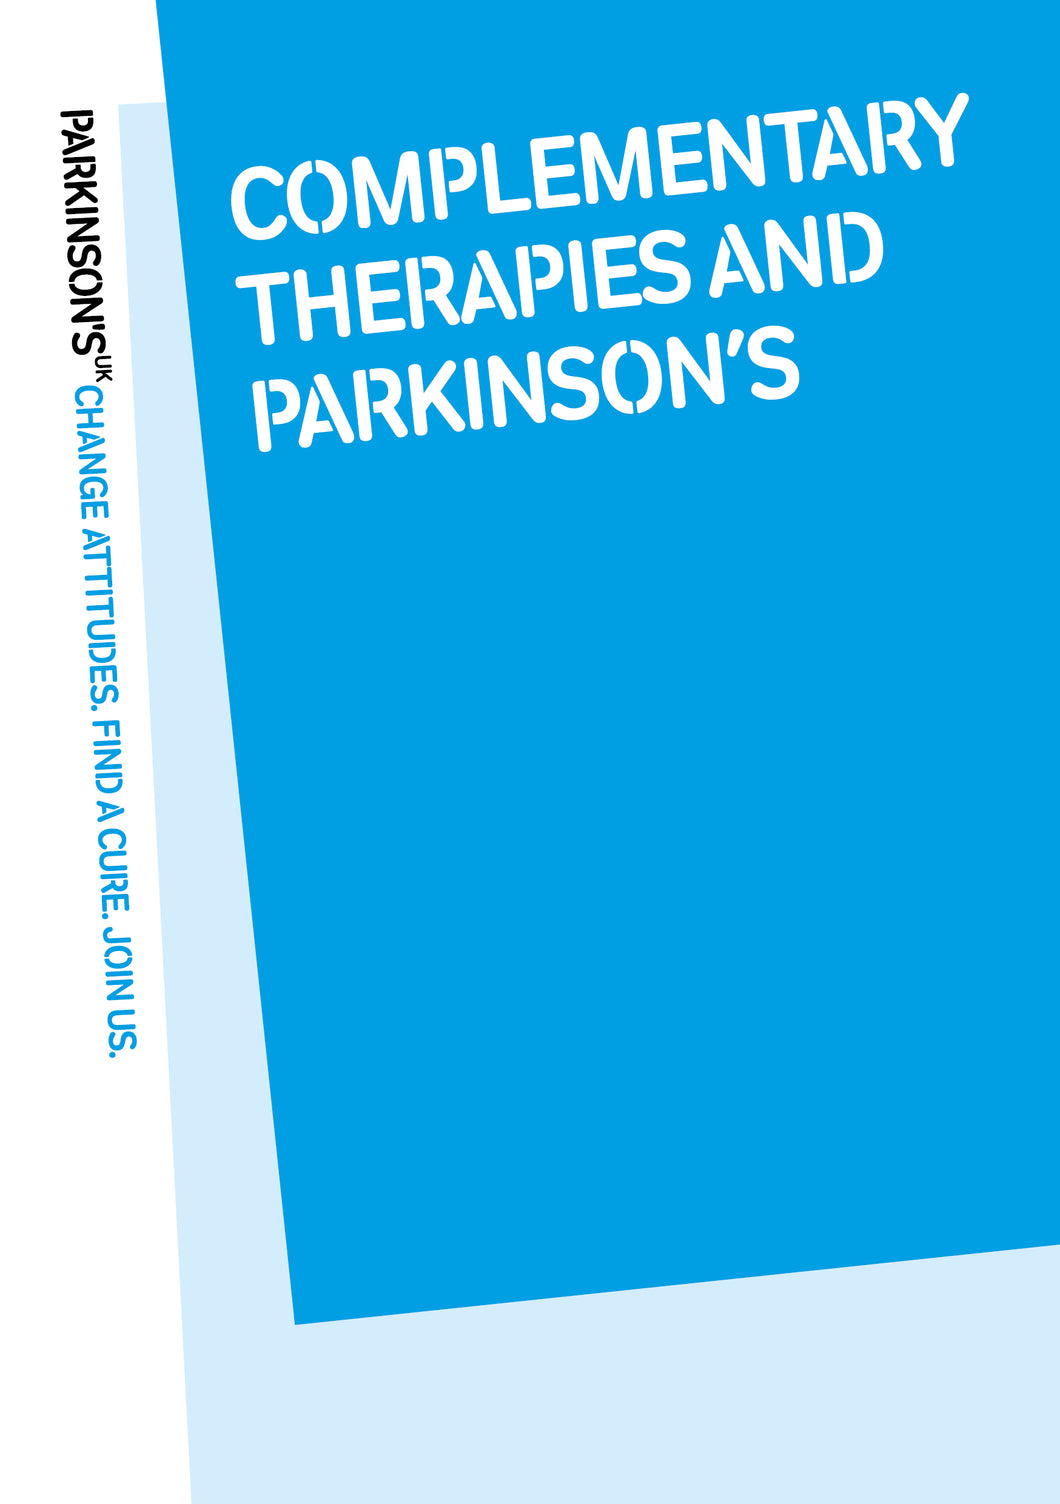 Complementary therapies and Parkinson's - Parkinson's shop